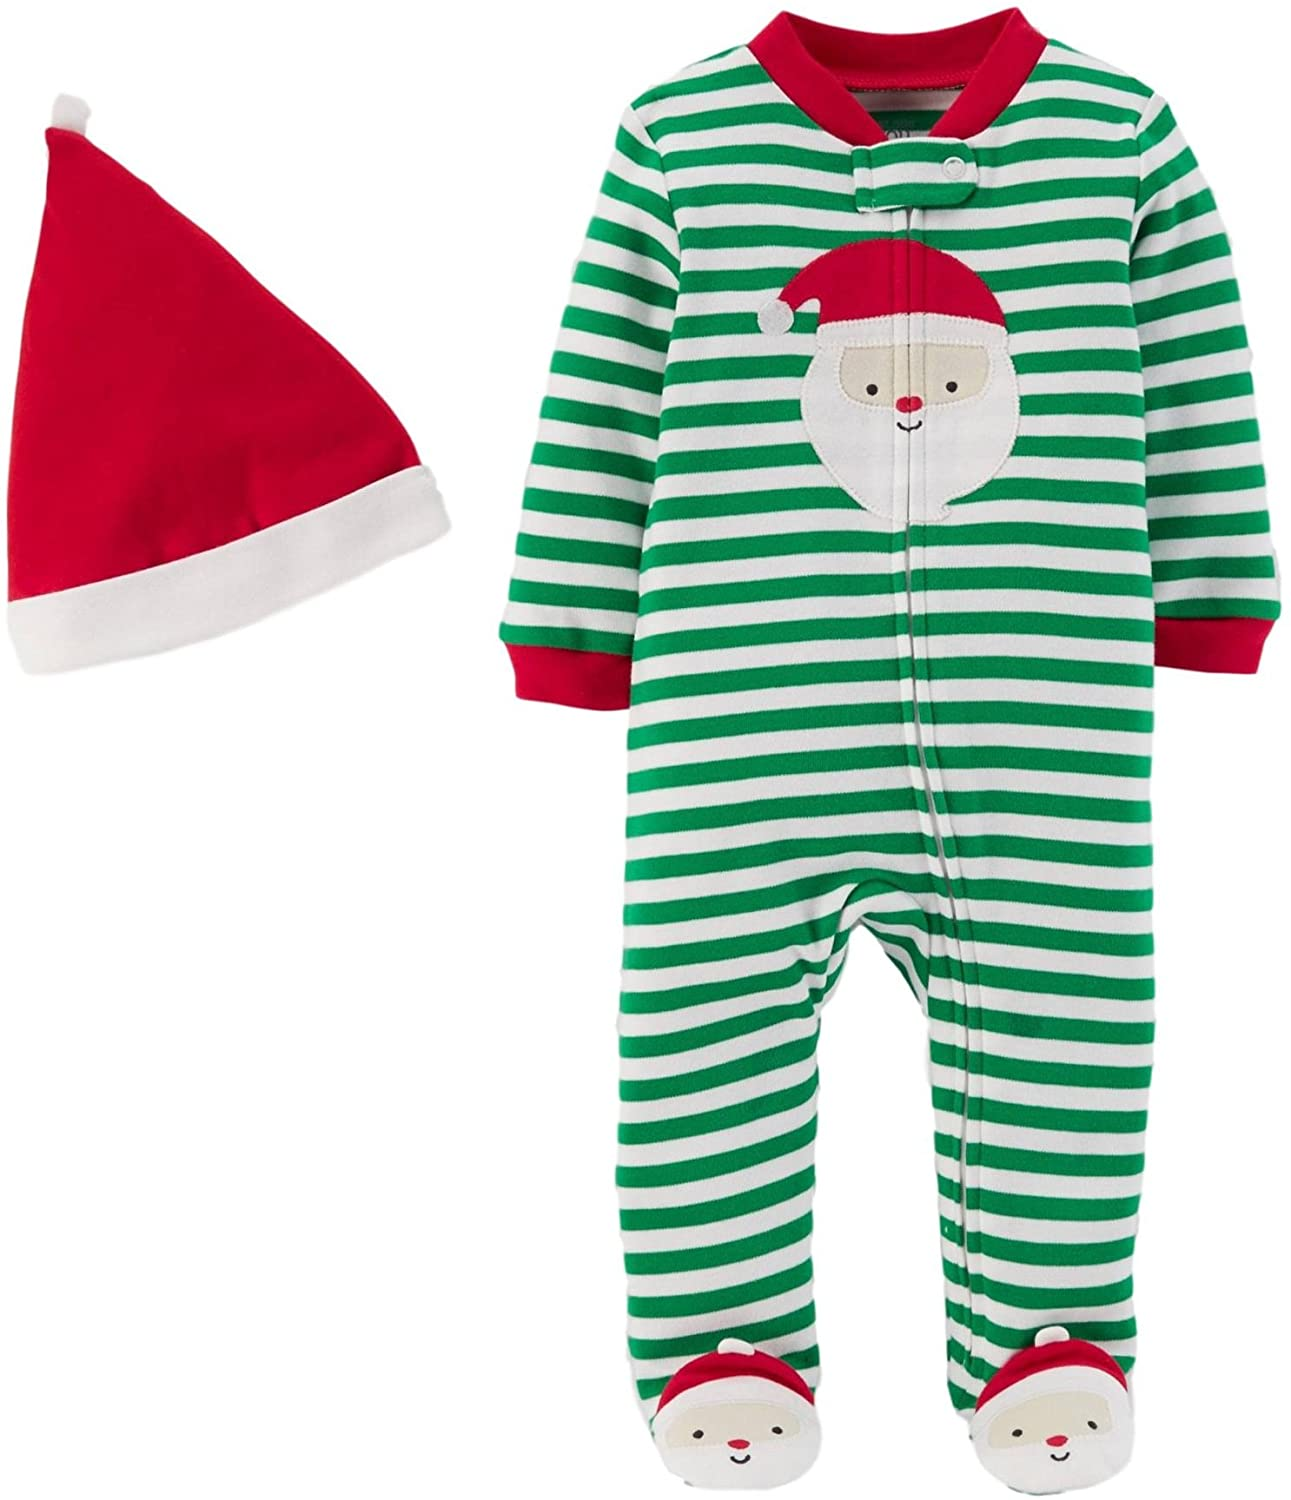 Carter's Just One You Baby Boys 2pc Striped Sleep N' Play and Hat Set Green/Red